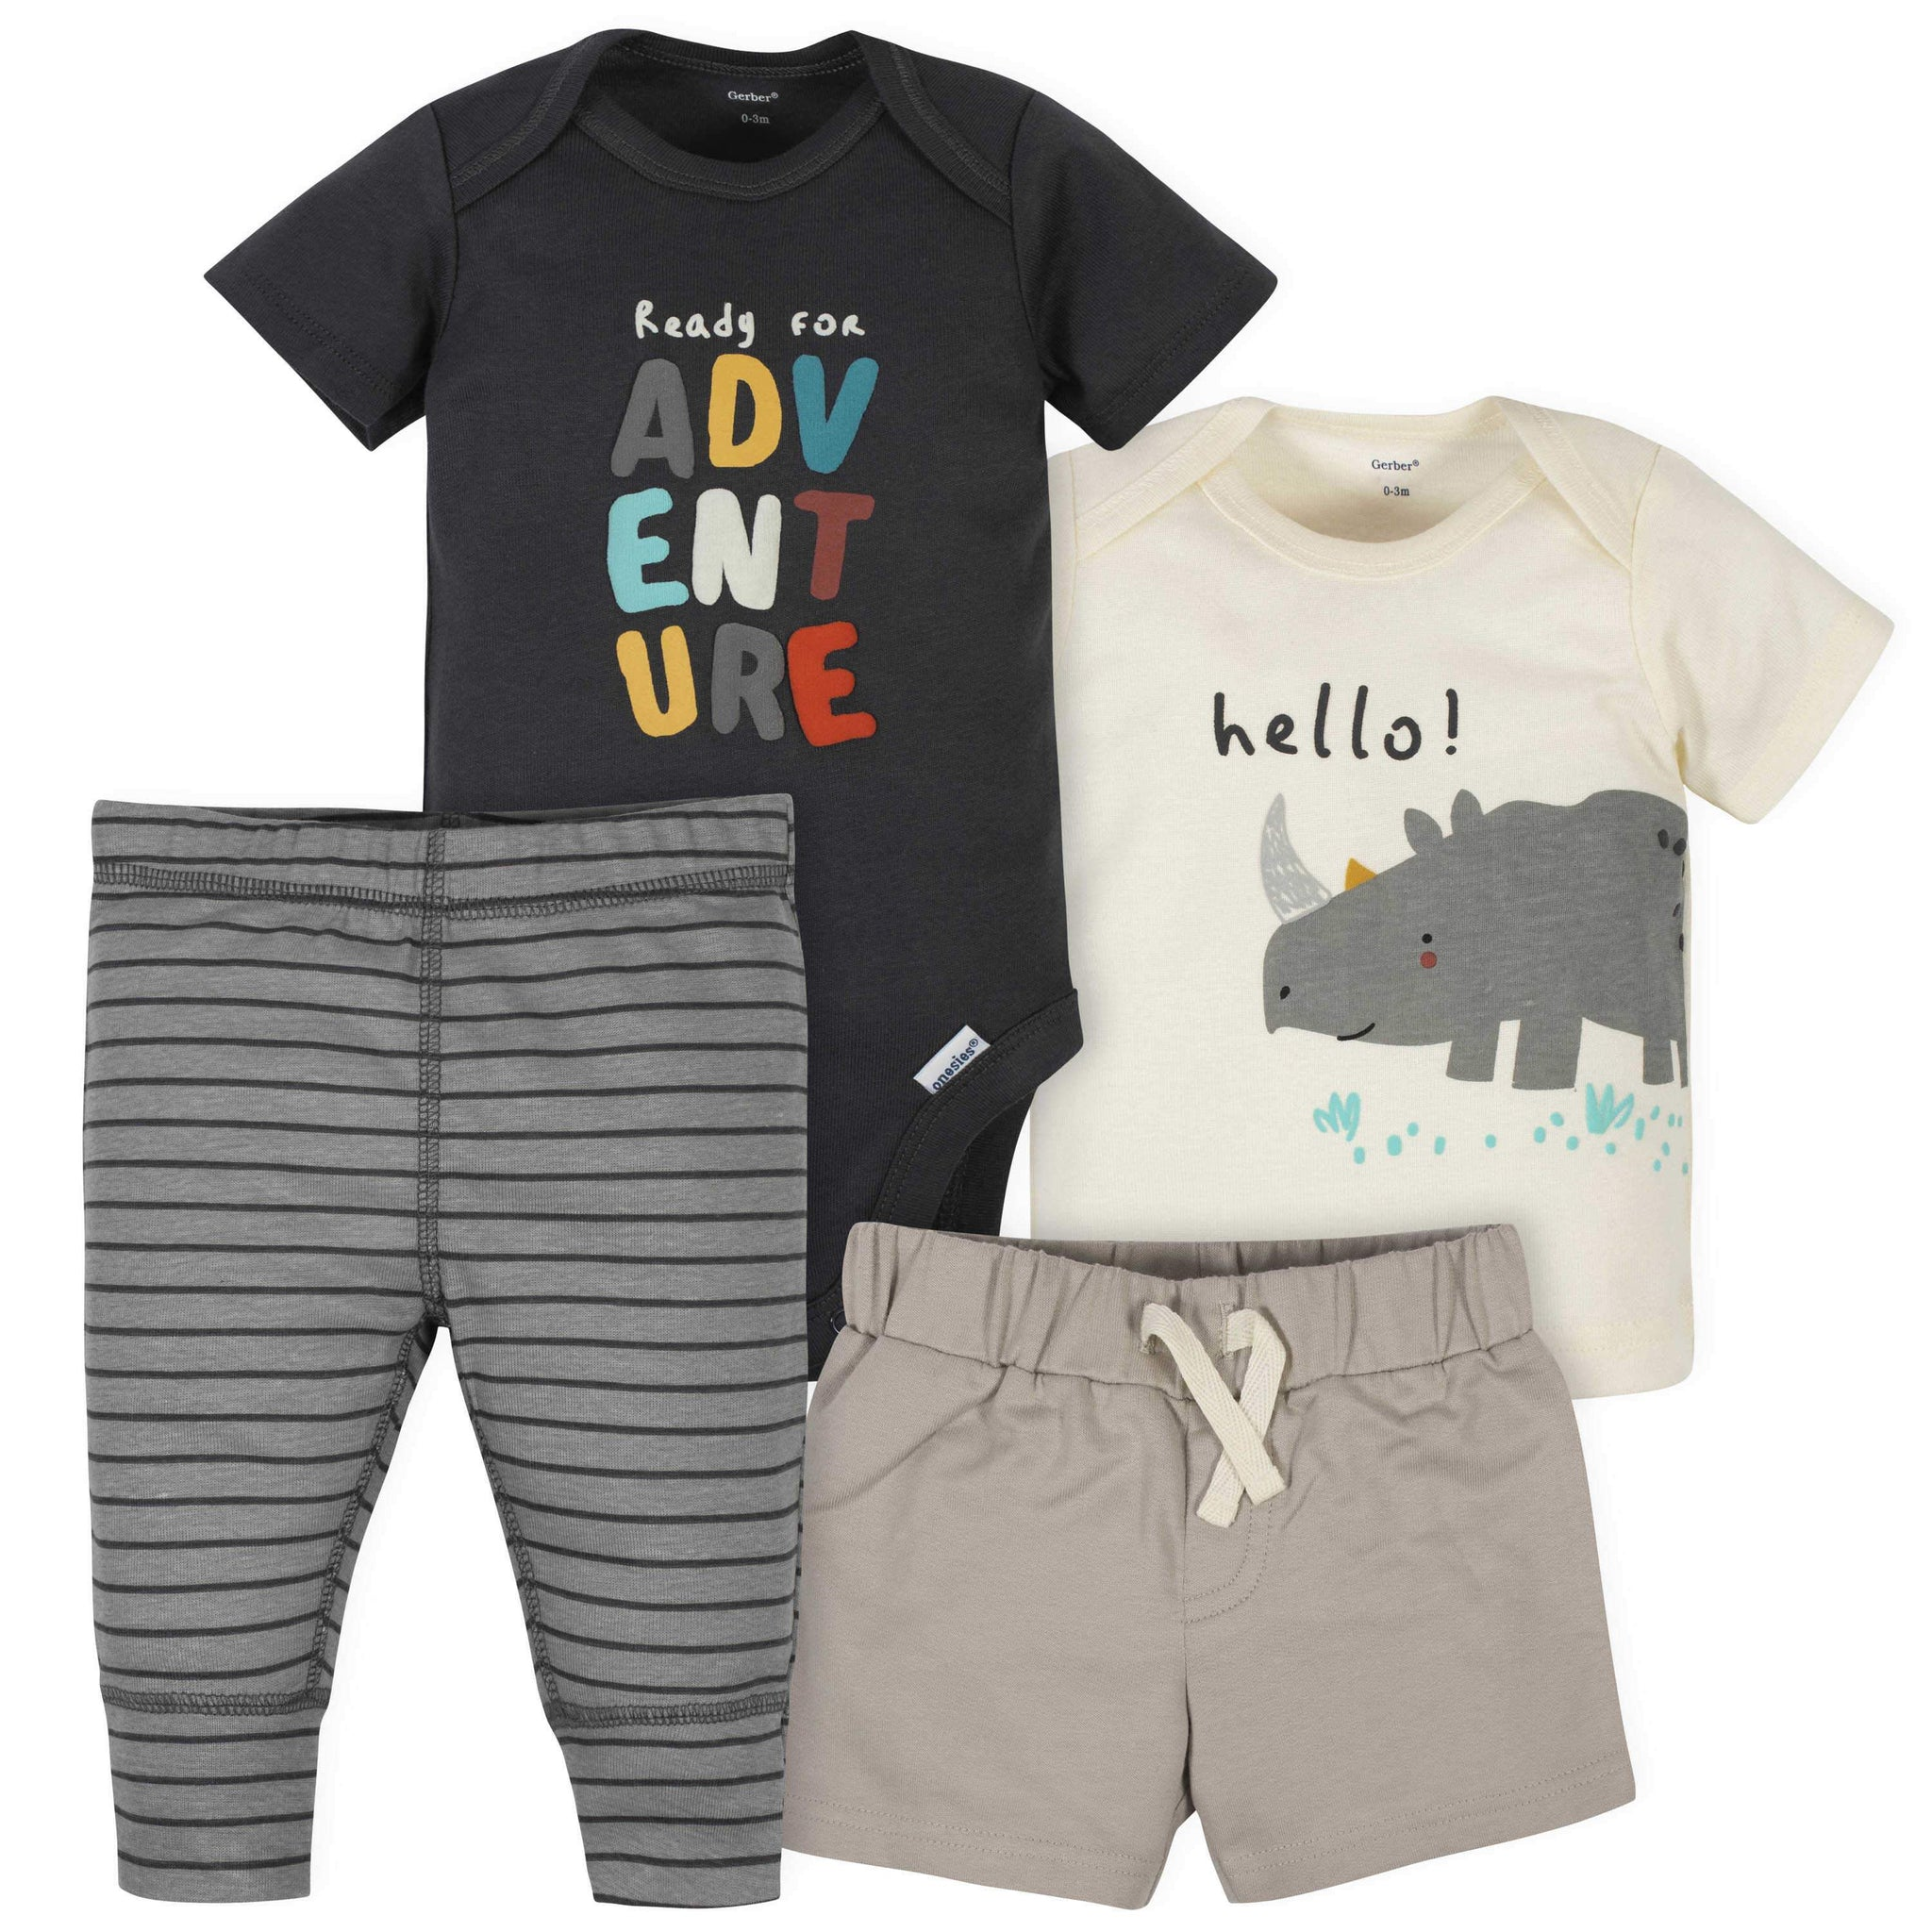 4-Piece Baby Boys Rhino Onesies Bodysuit, Short, Shirt, and Active Pant Set